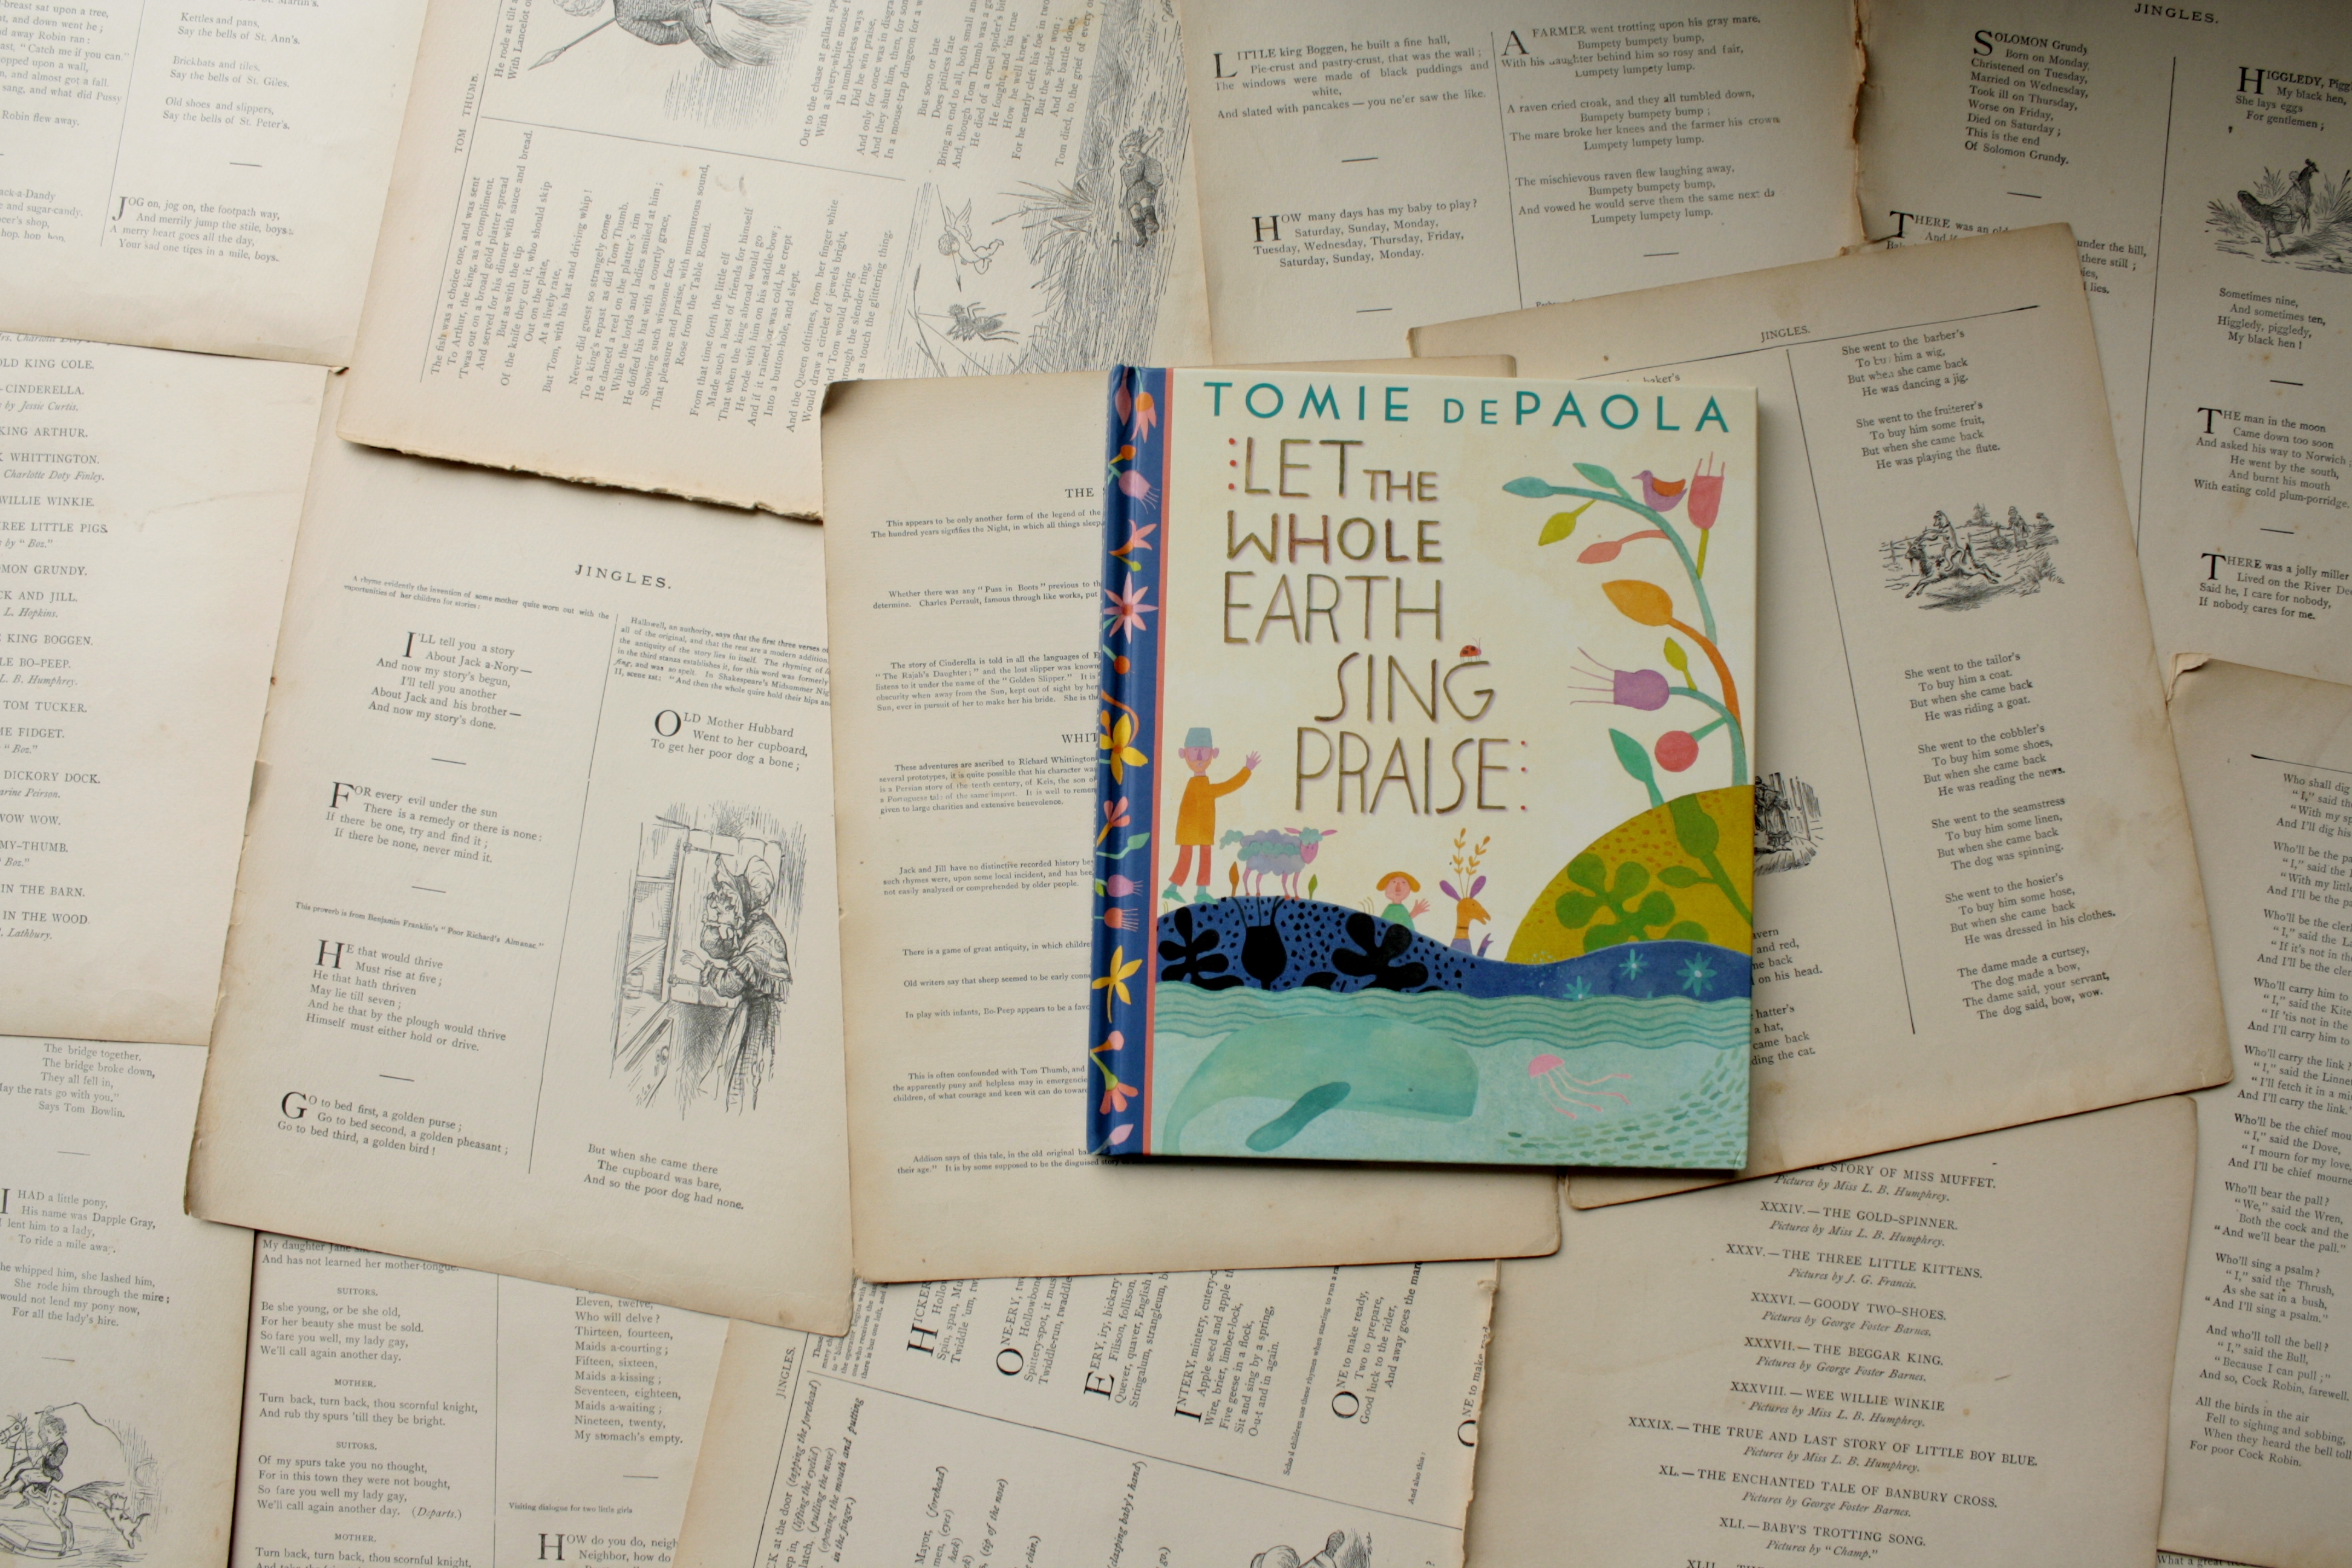 Let the Whole Earth Sing Praise | Tomie dePaola